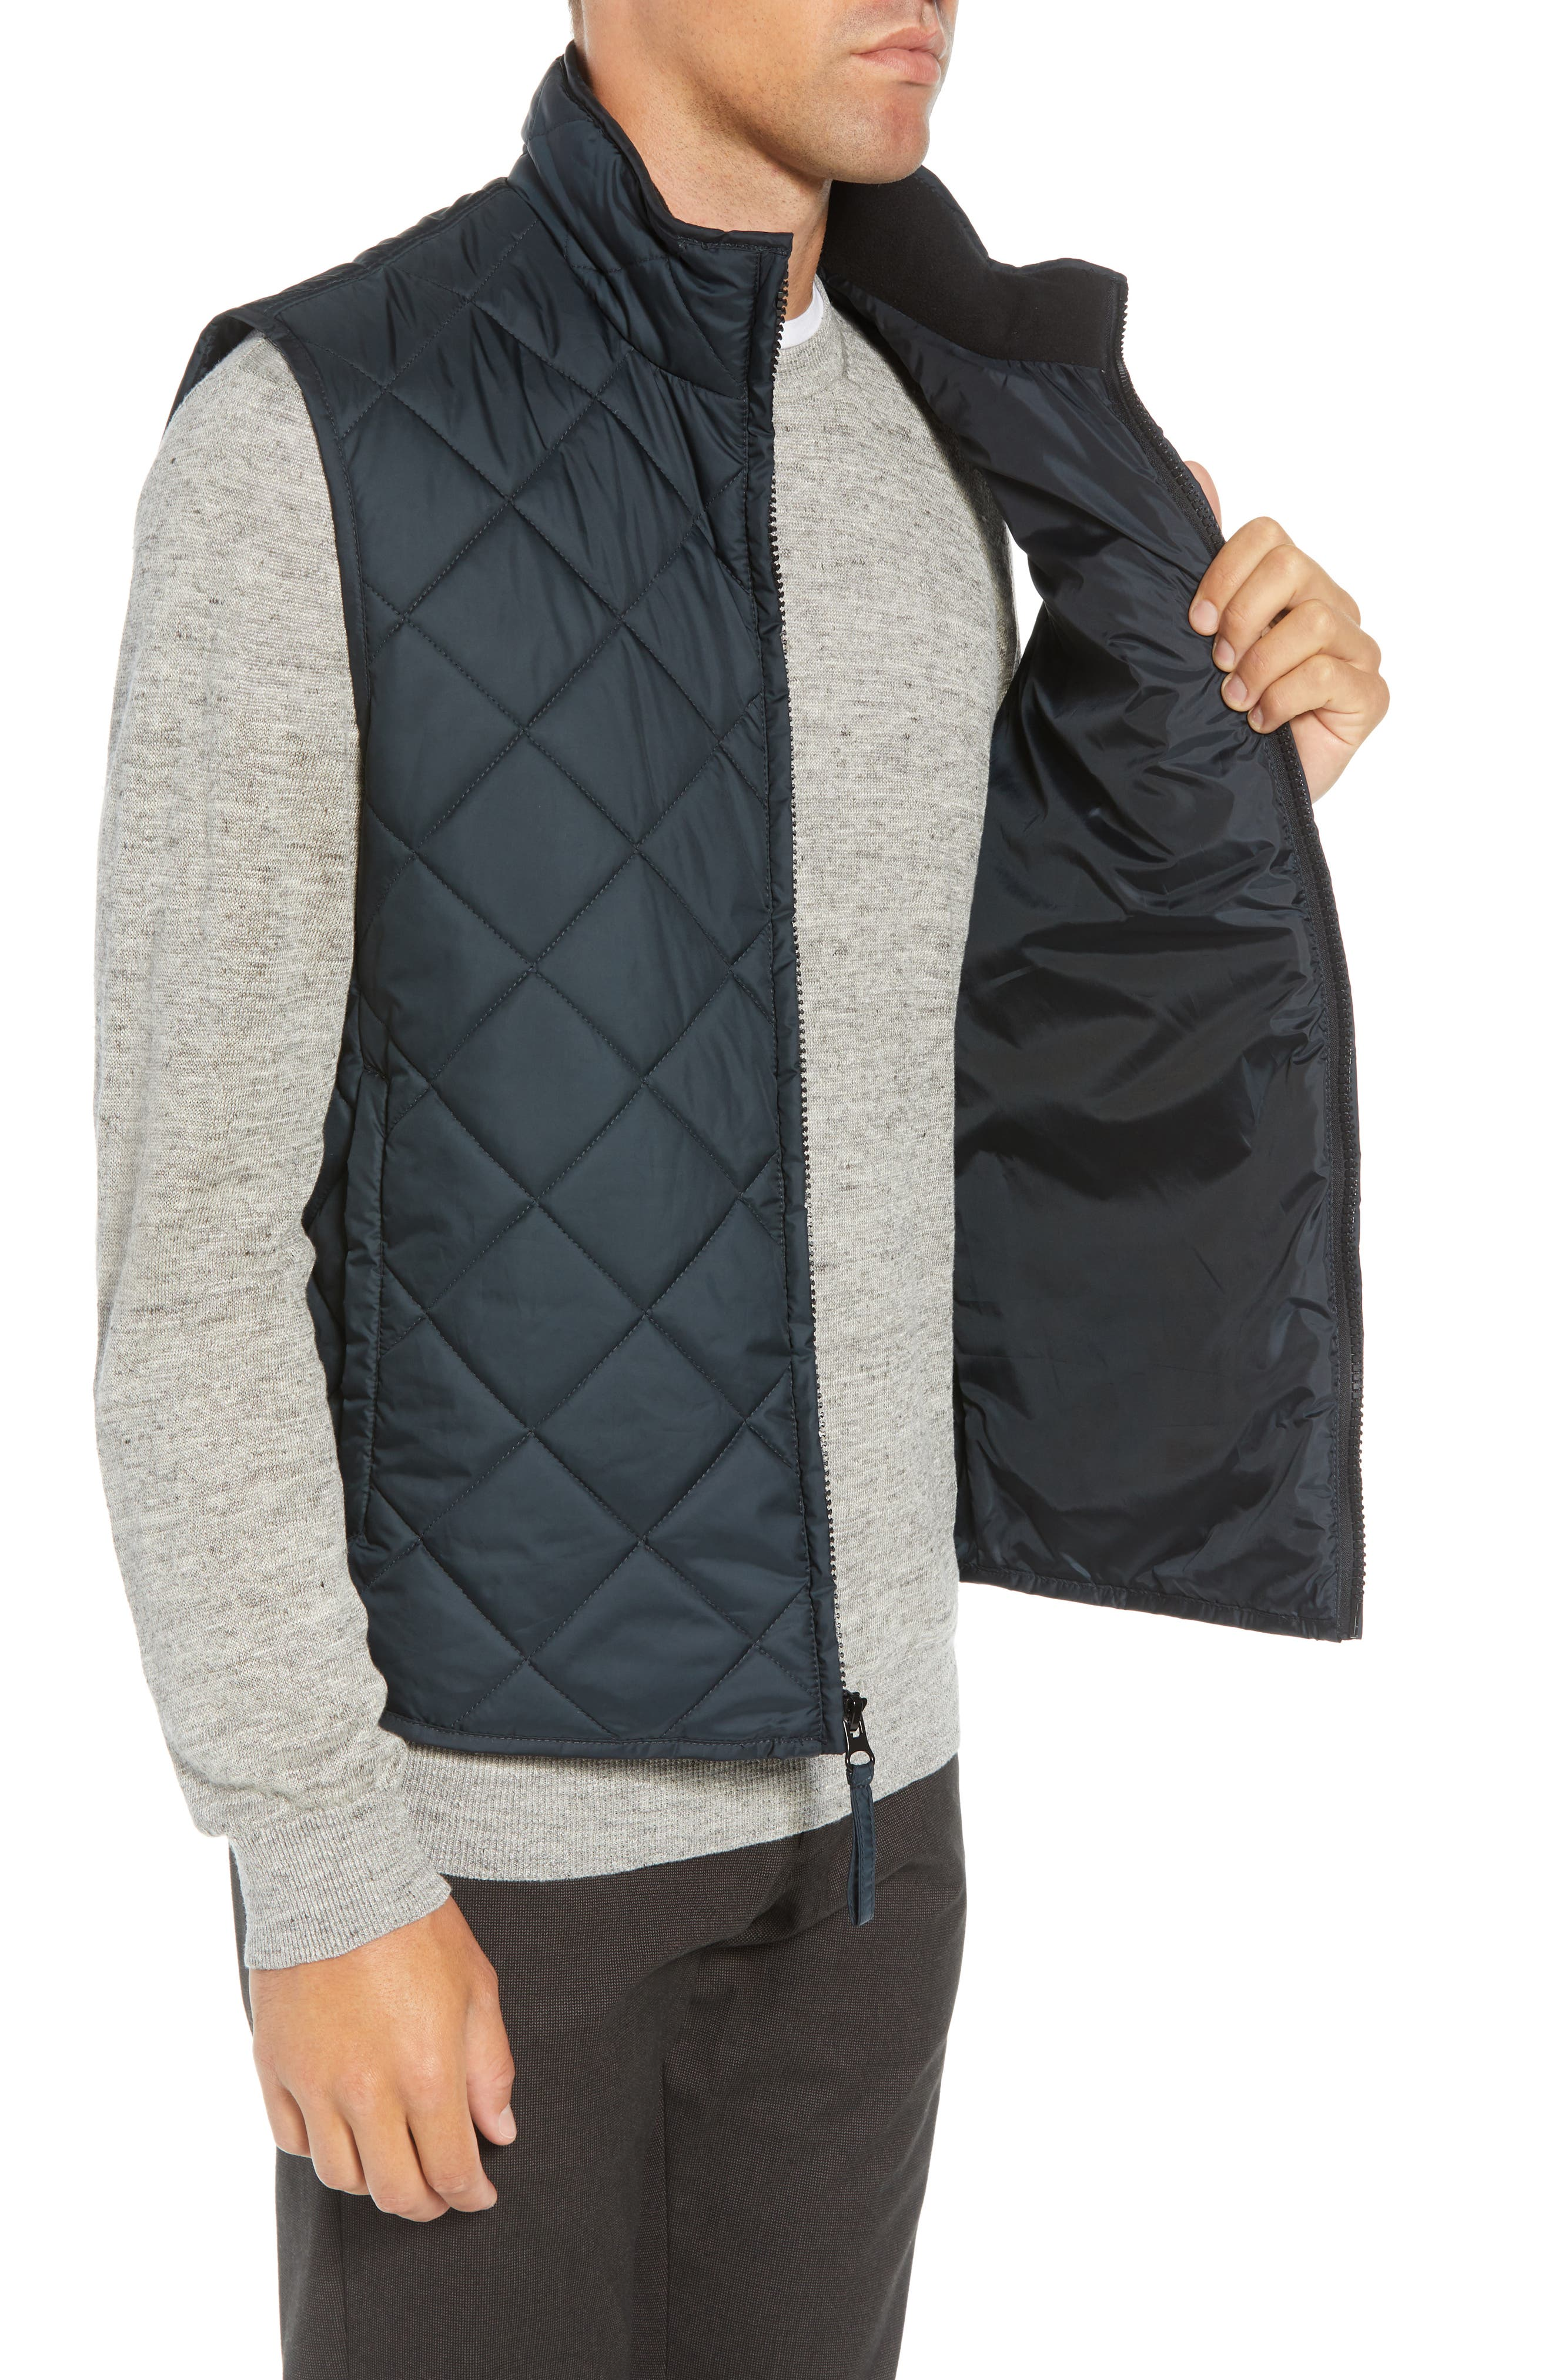 MARC NEW YORK, Chester Packable Quilted Vest, Alternate thumbnail 4, color, BLACK